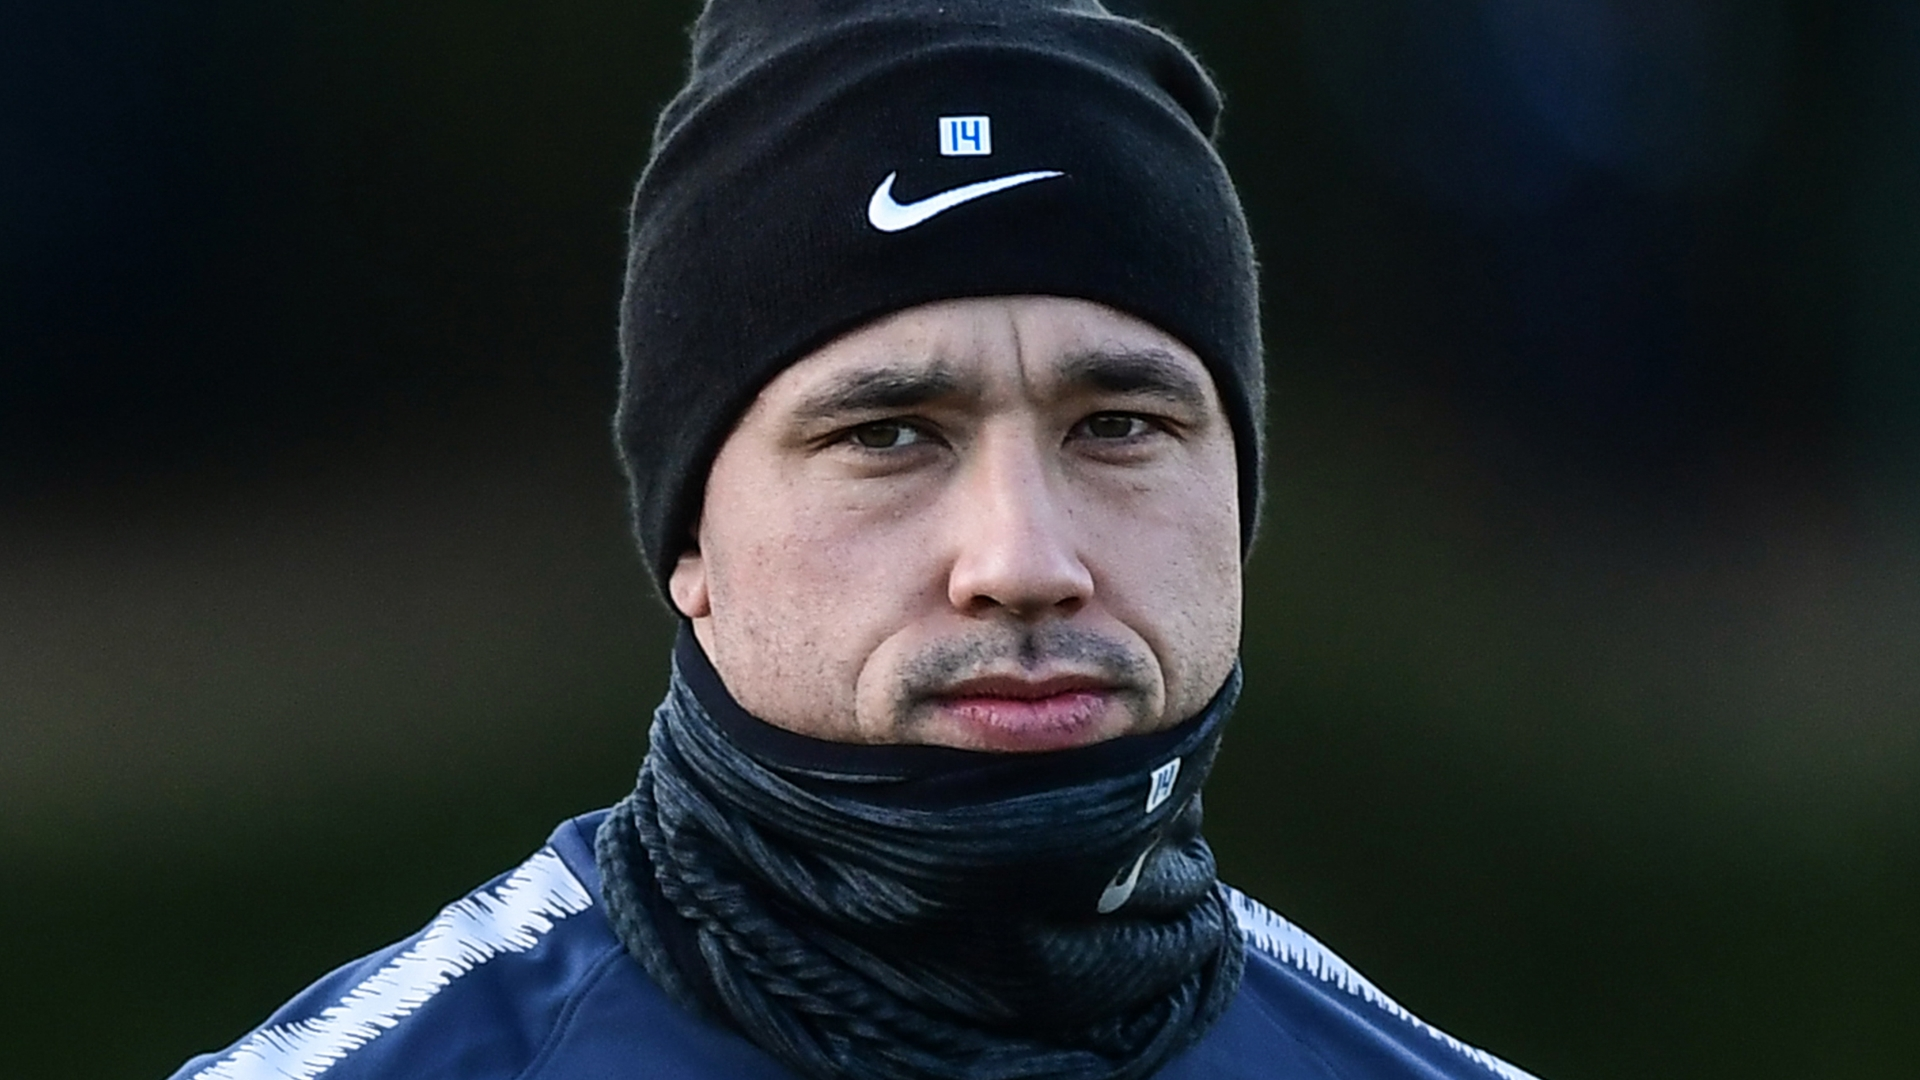 Radja Nainggolan, Inter training